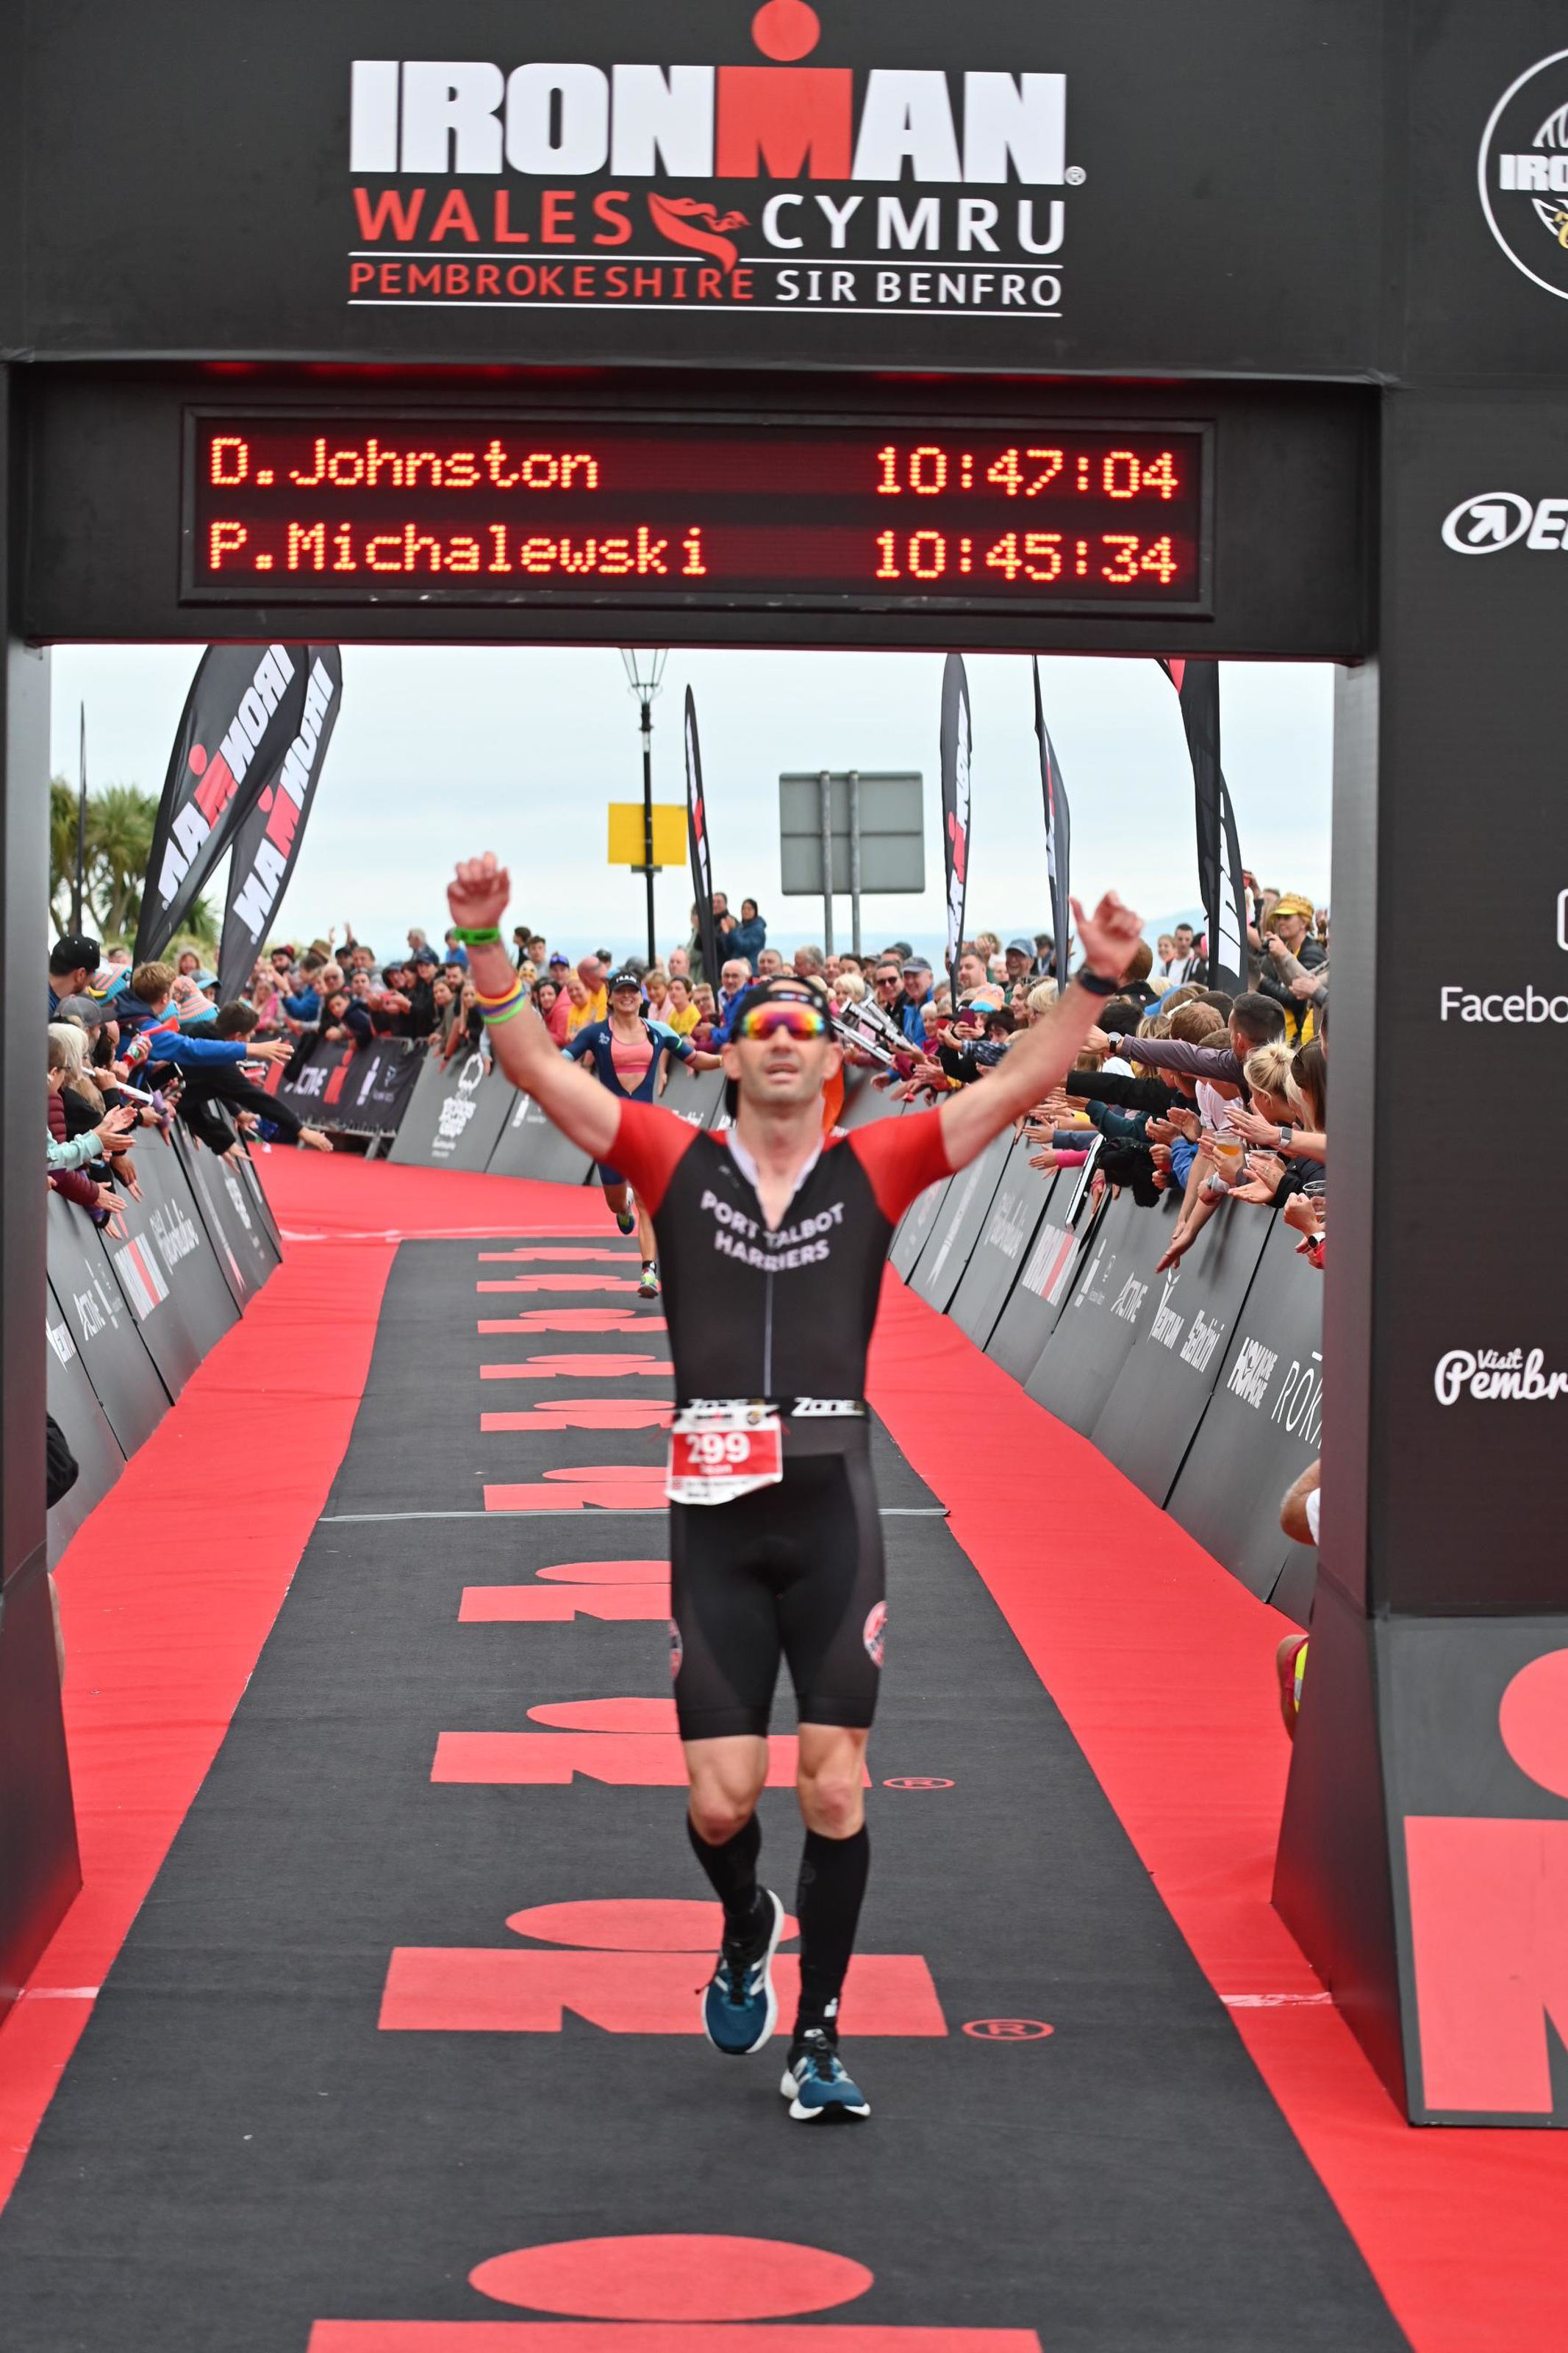 Dean Johnston Ironman Wales